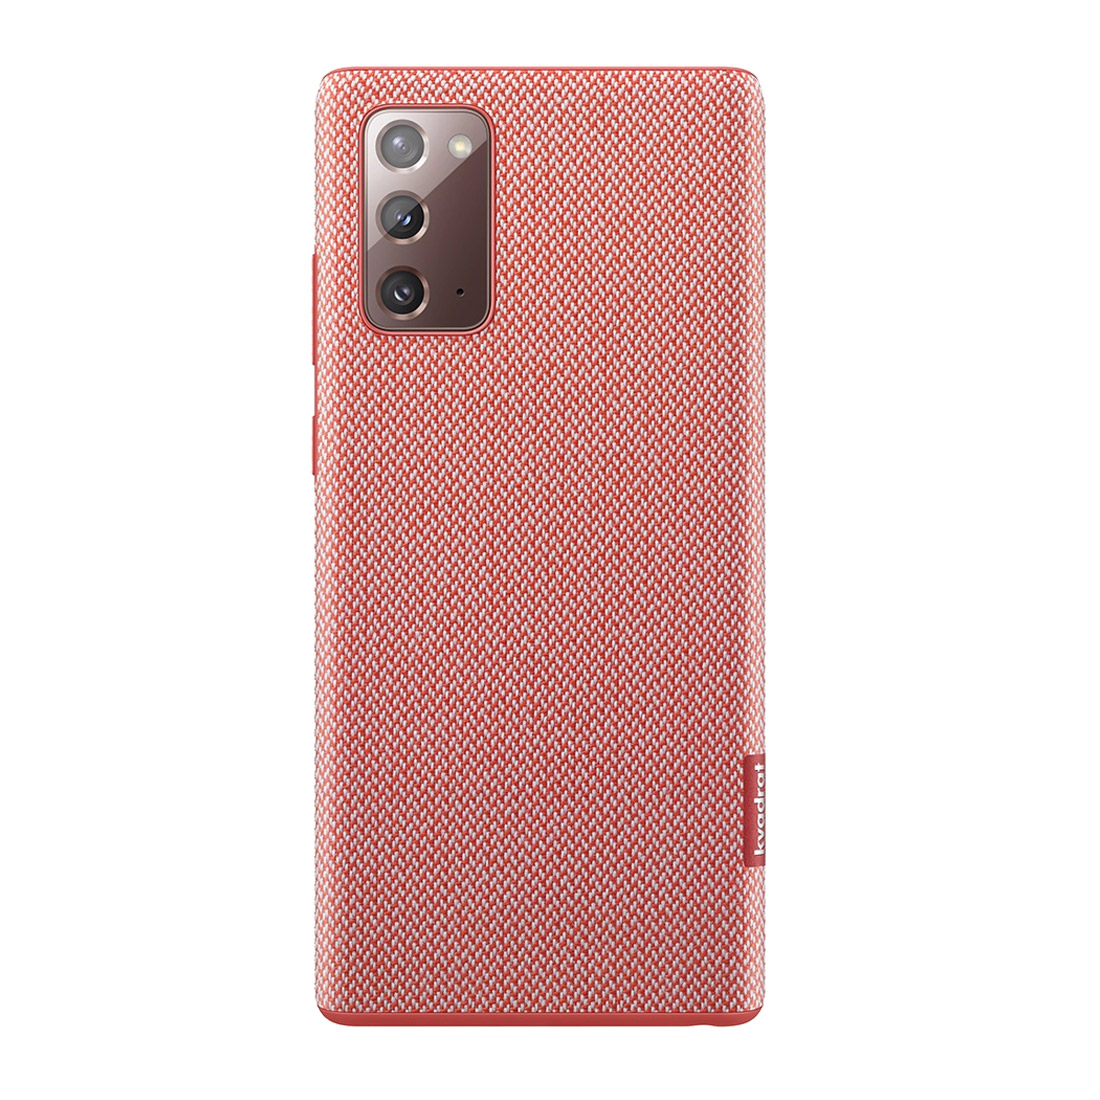 Samsung Galaxy Note 20 Kvadrat Cover - Red